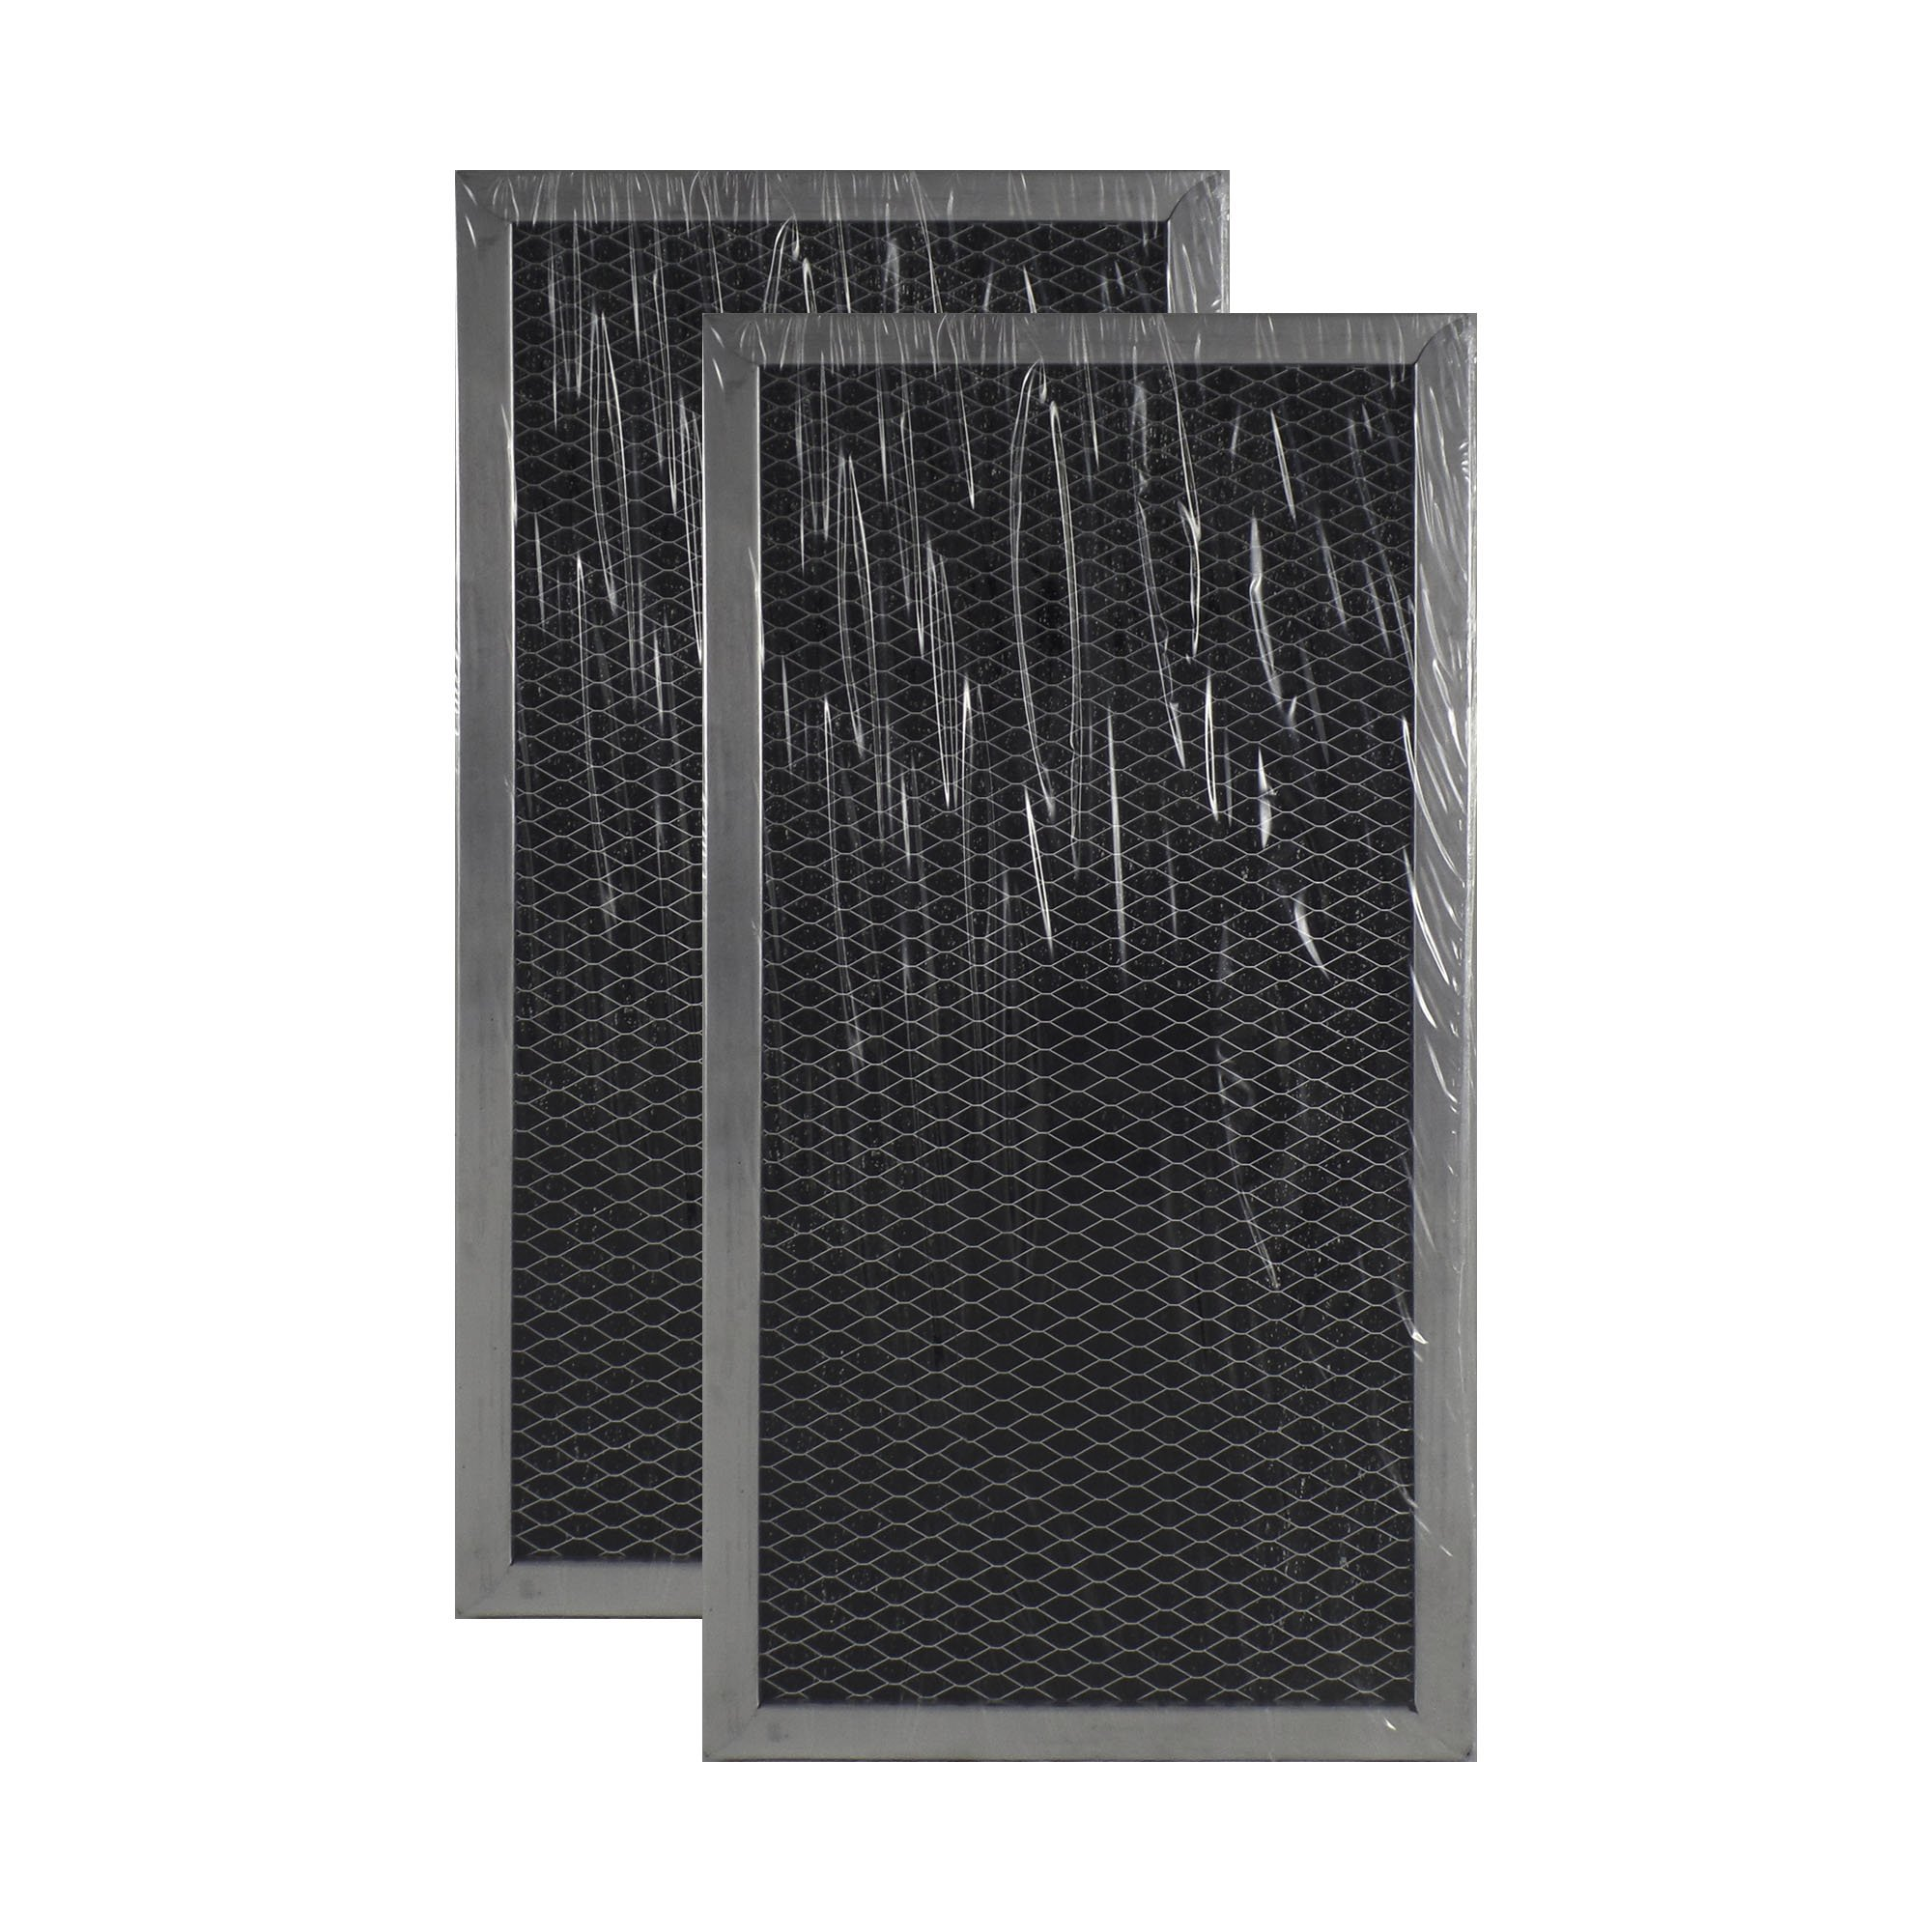 2 PACK Air Filter Factory Compatible Replacement For Whirlpool 1266682 Microwave Hood Charcoal Filter Set